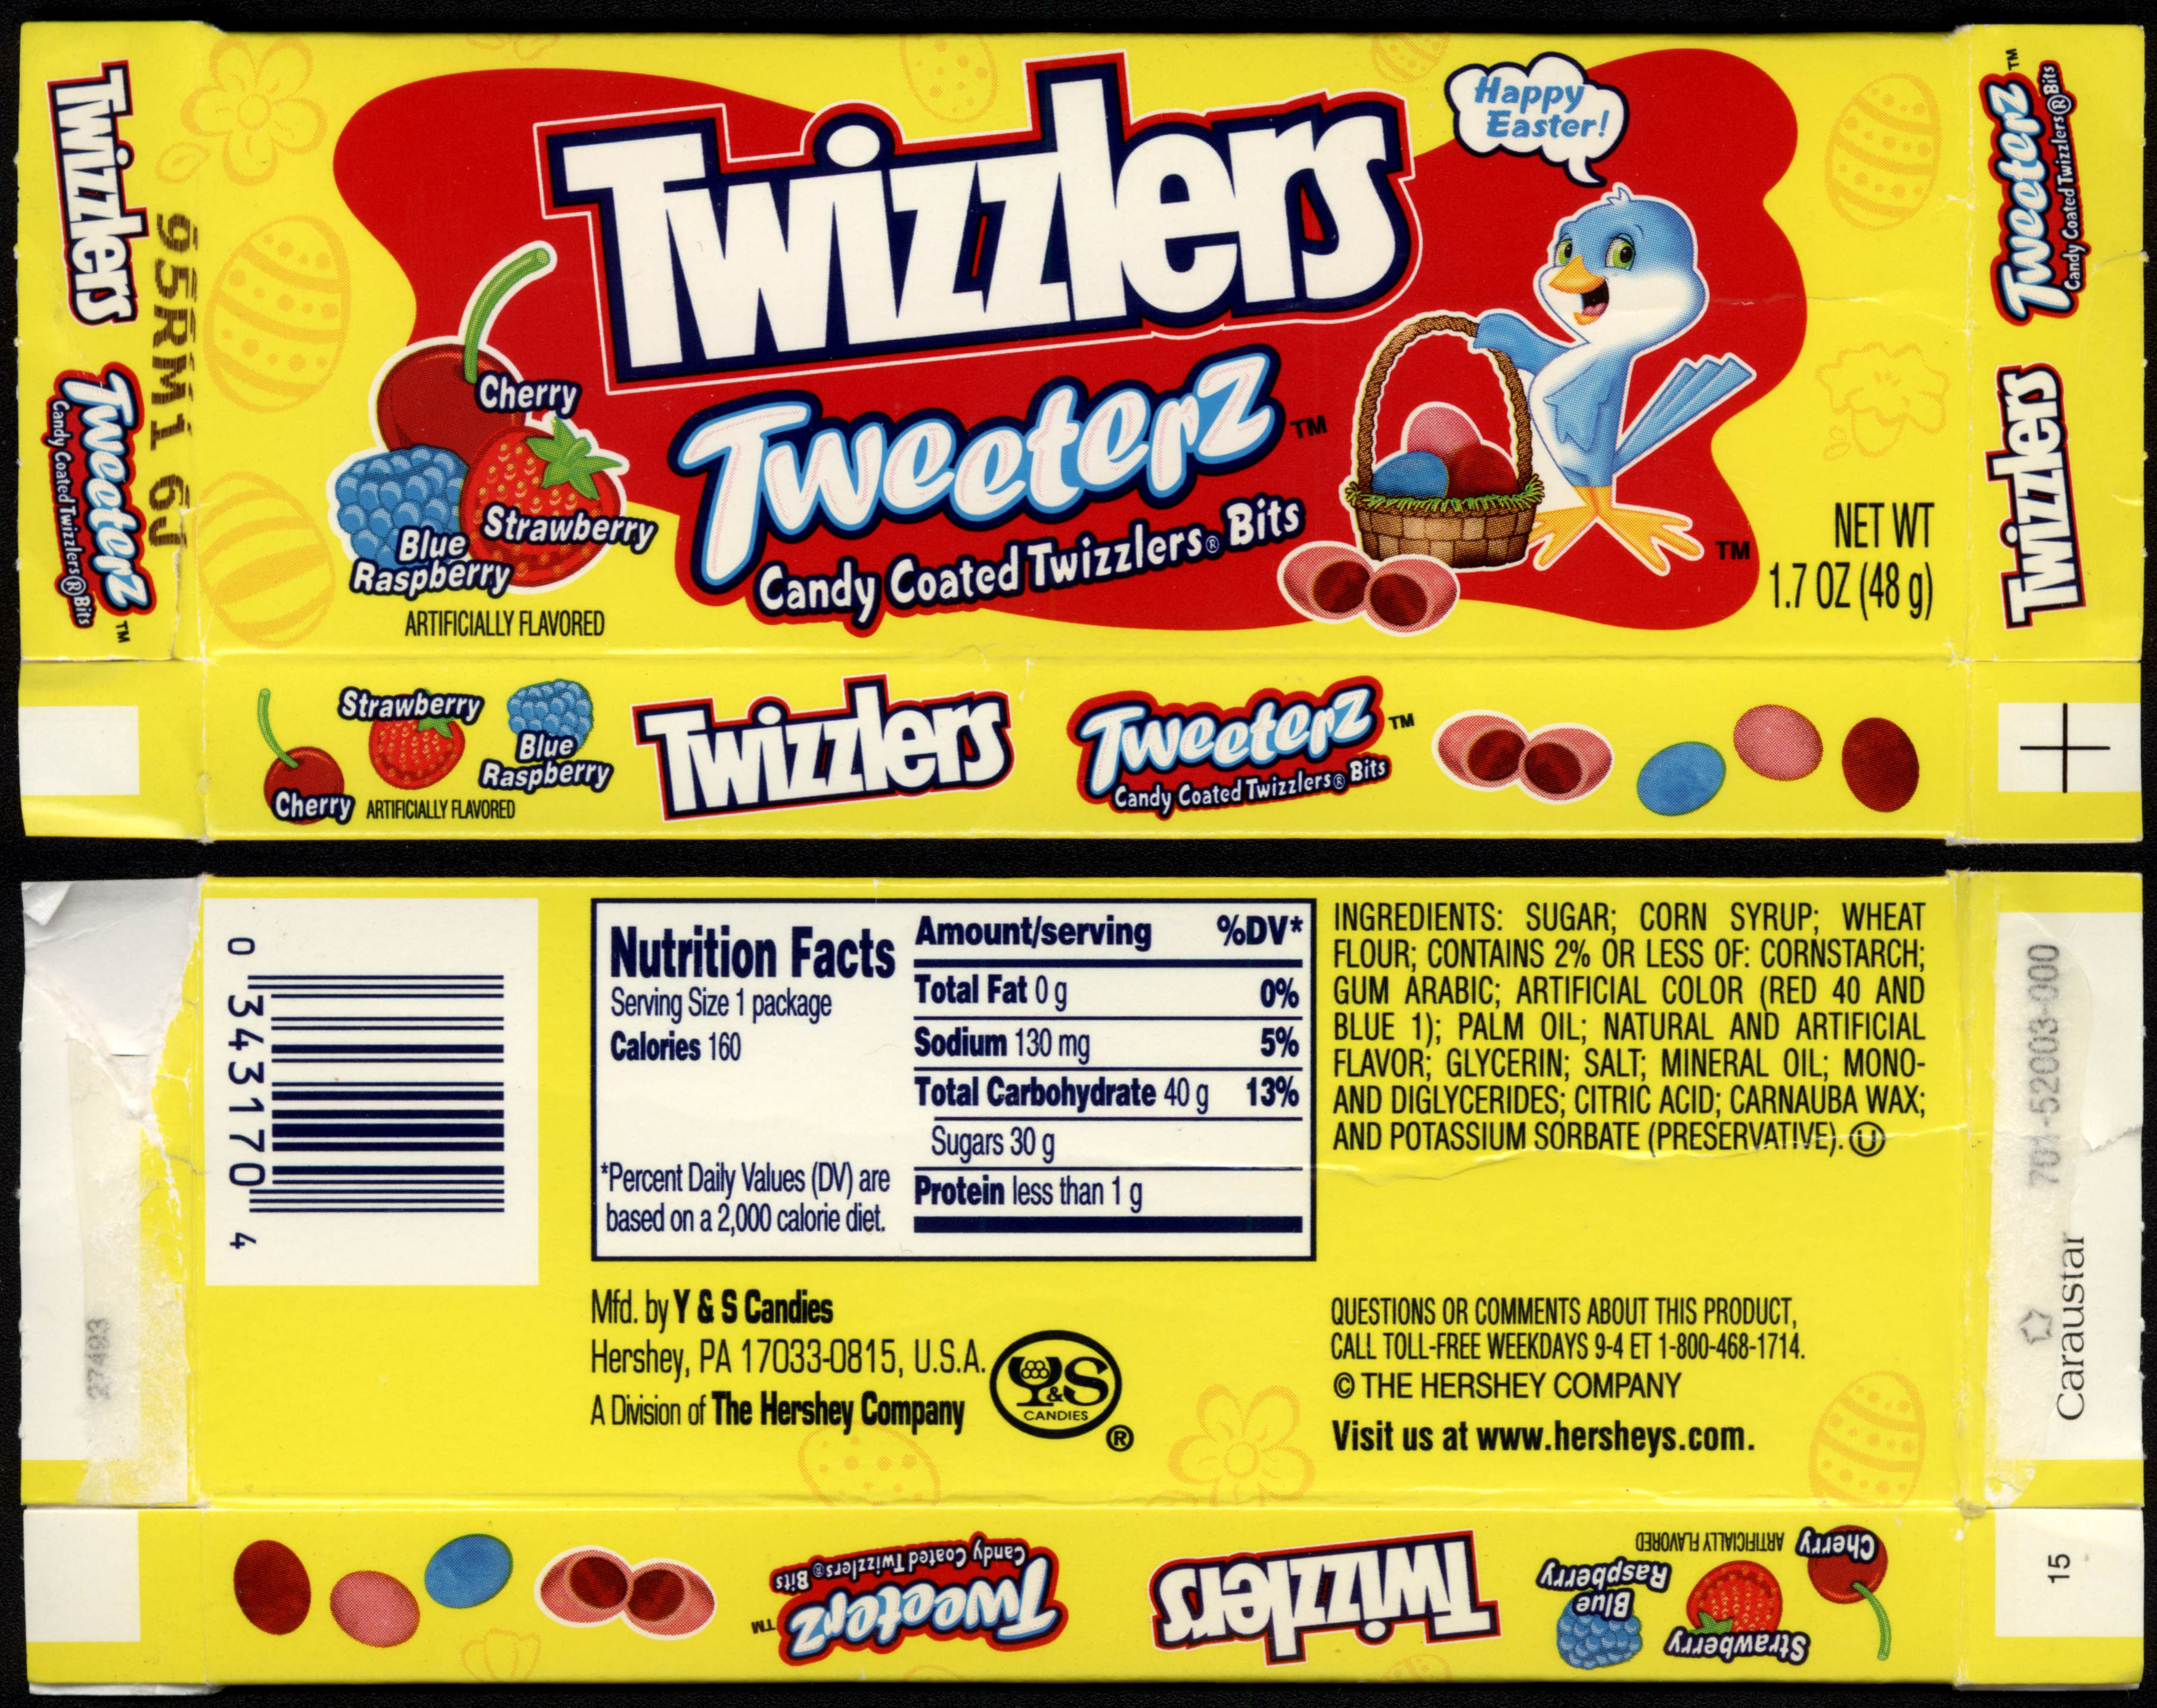 Hershey - Y&S Candies - Twizzlers Tweeters - 1.7oz Easter candy box - mid-2000s